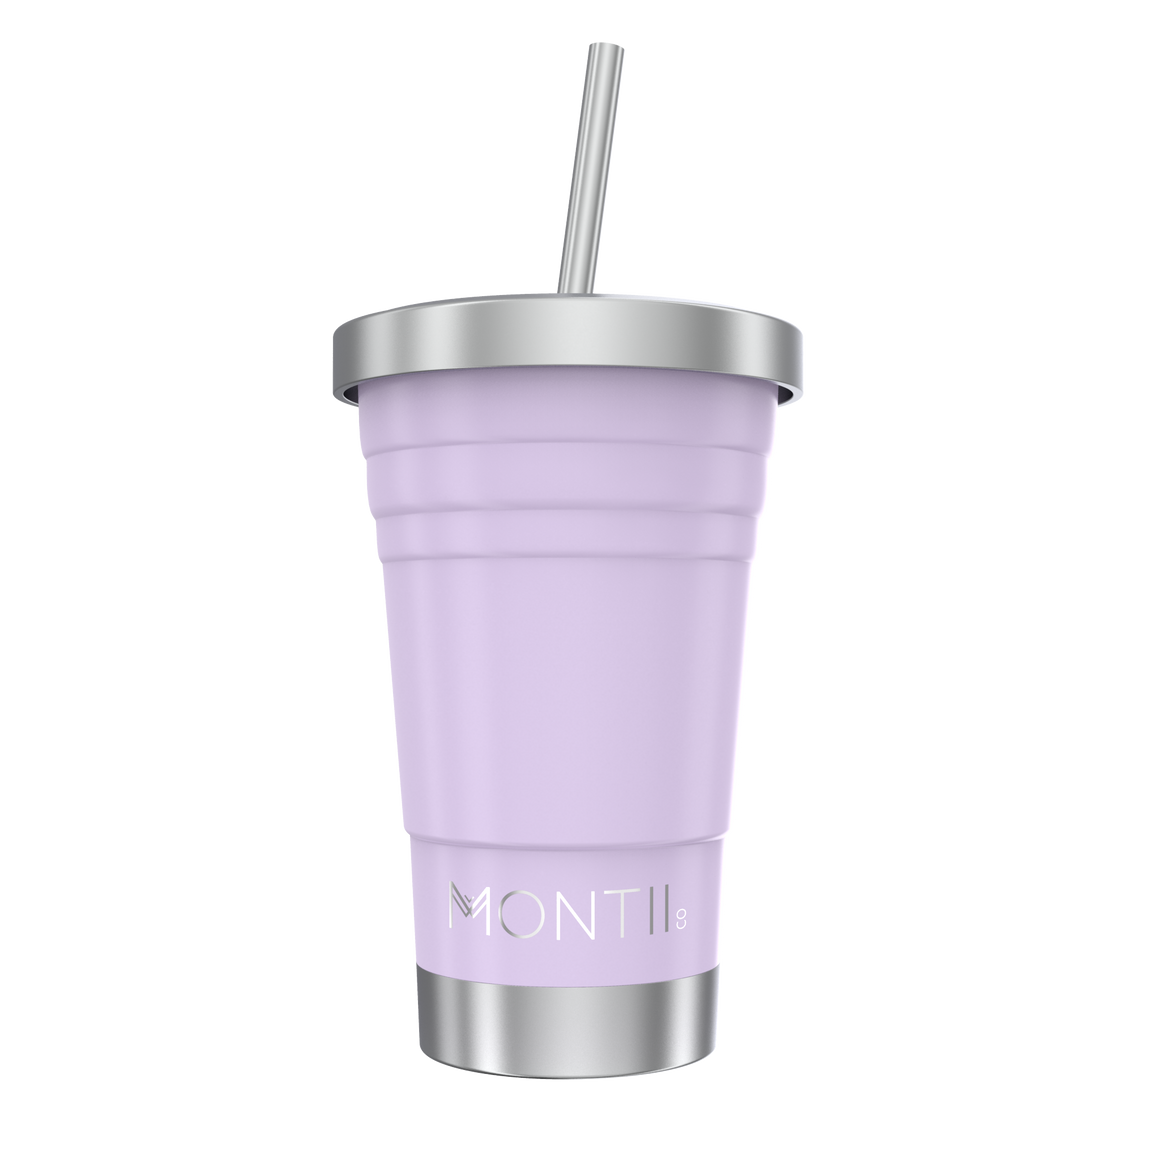 MontiiCo Mini Smoothie Cup (275ml) - Lavender